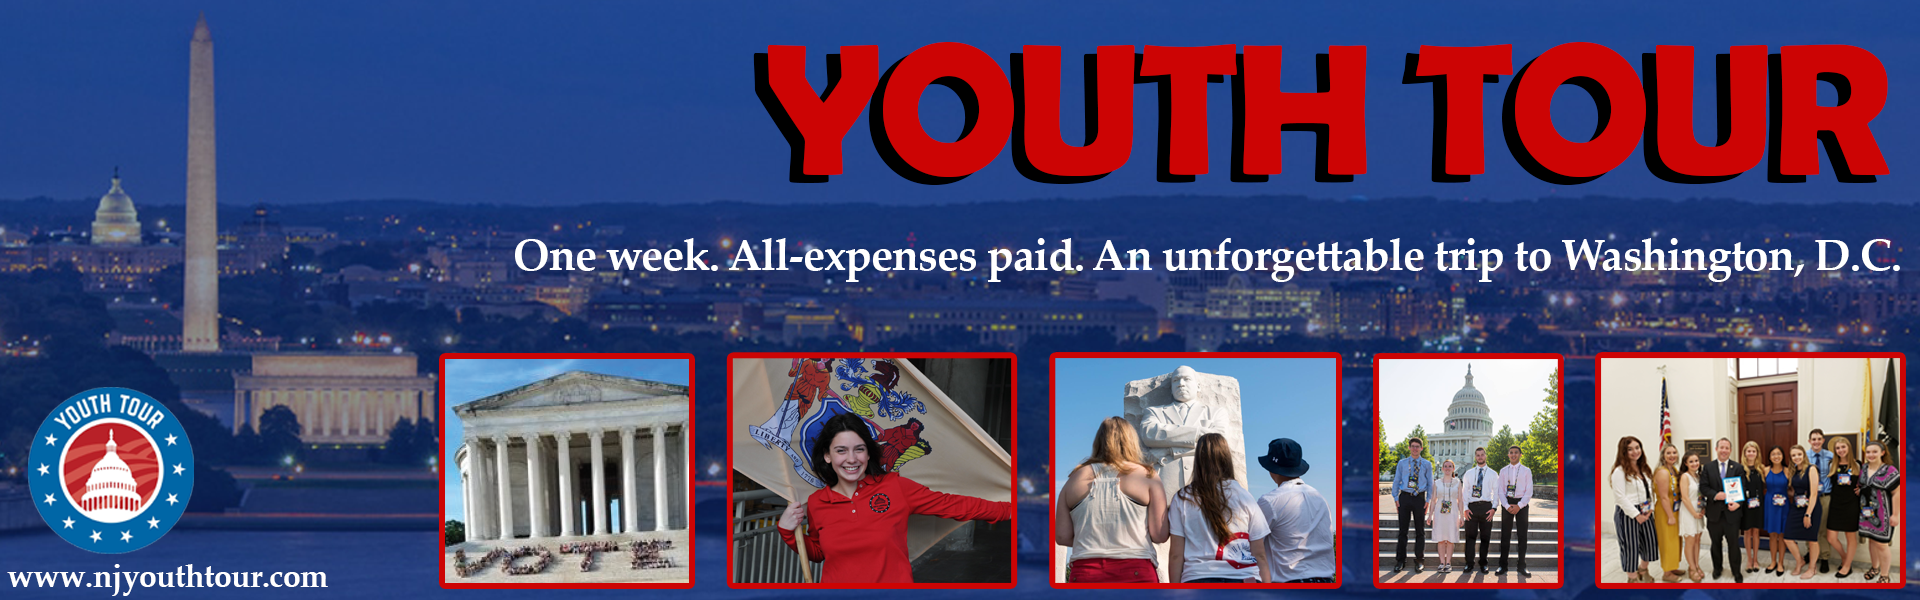 Youth Tour Header